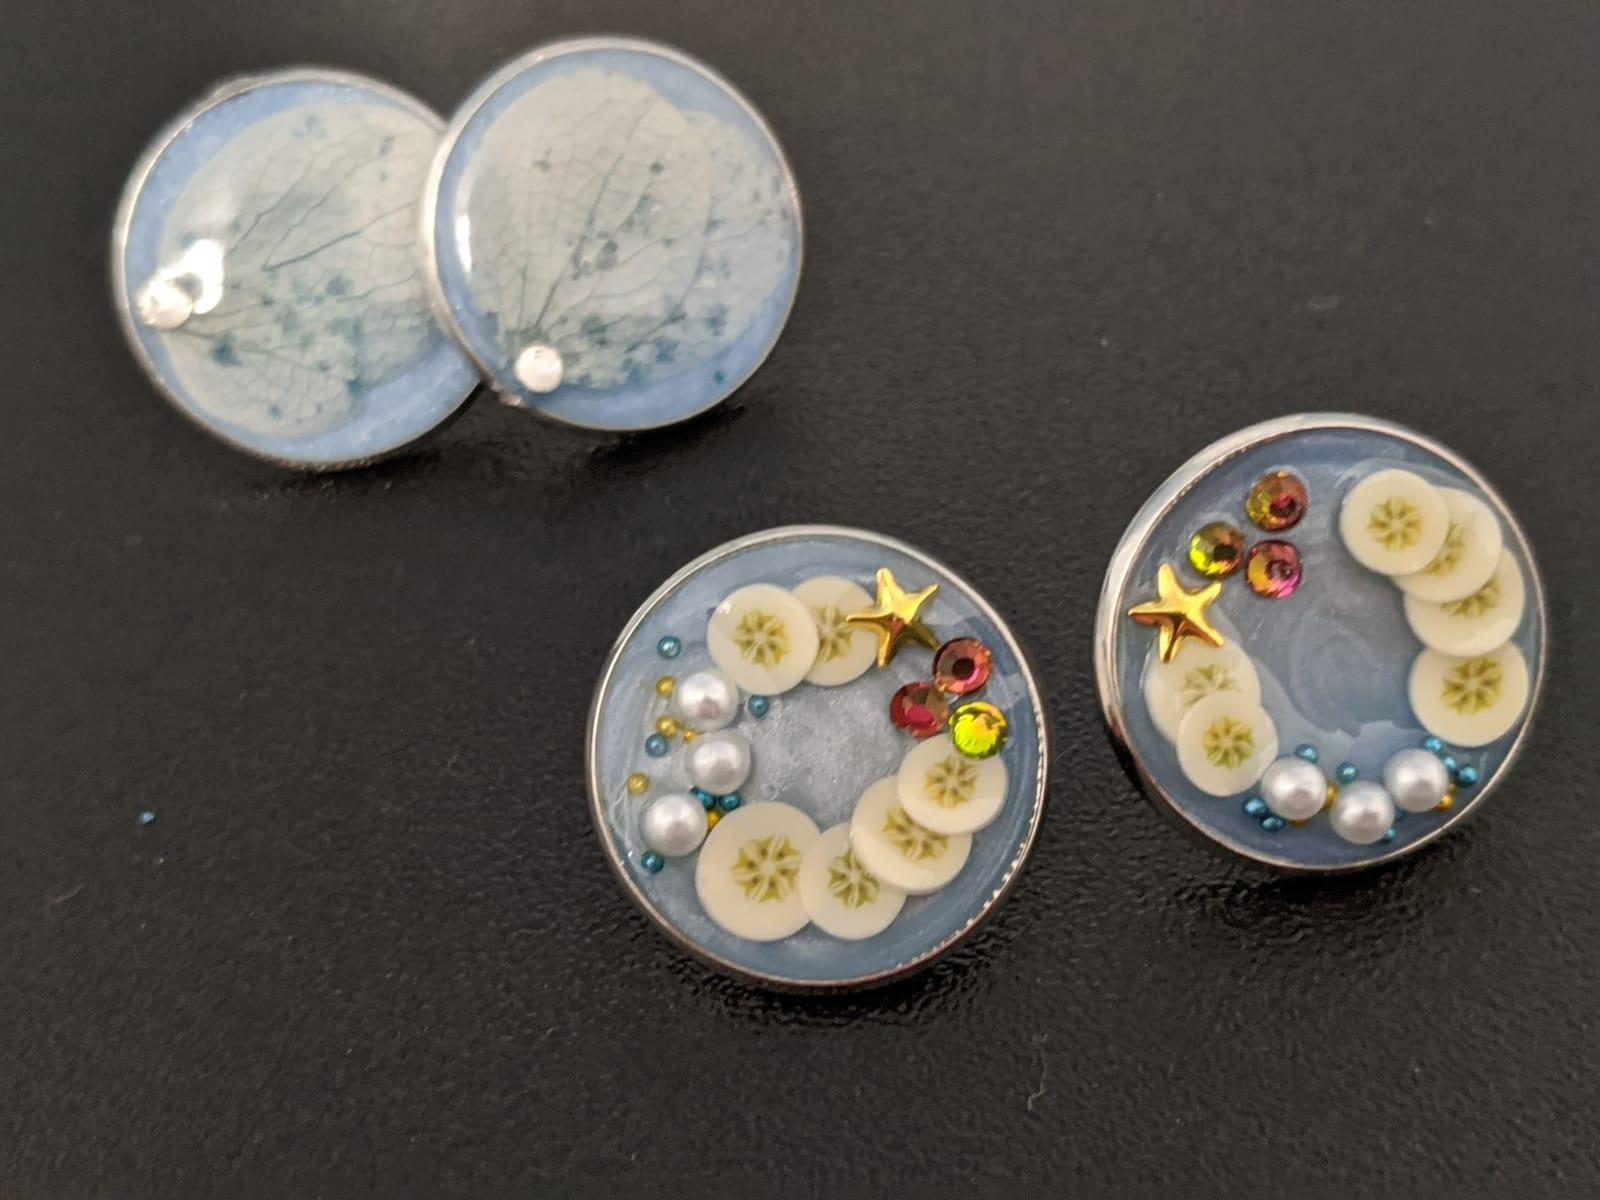 Fruit and dried flower studs